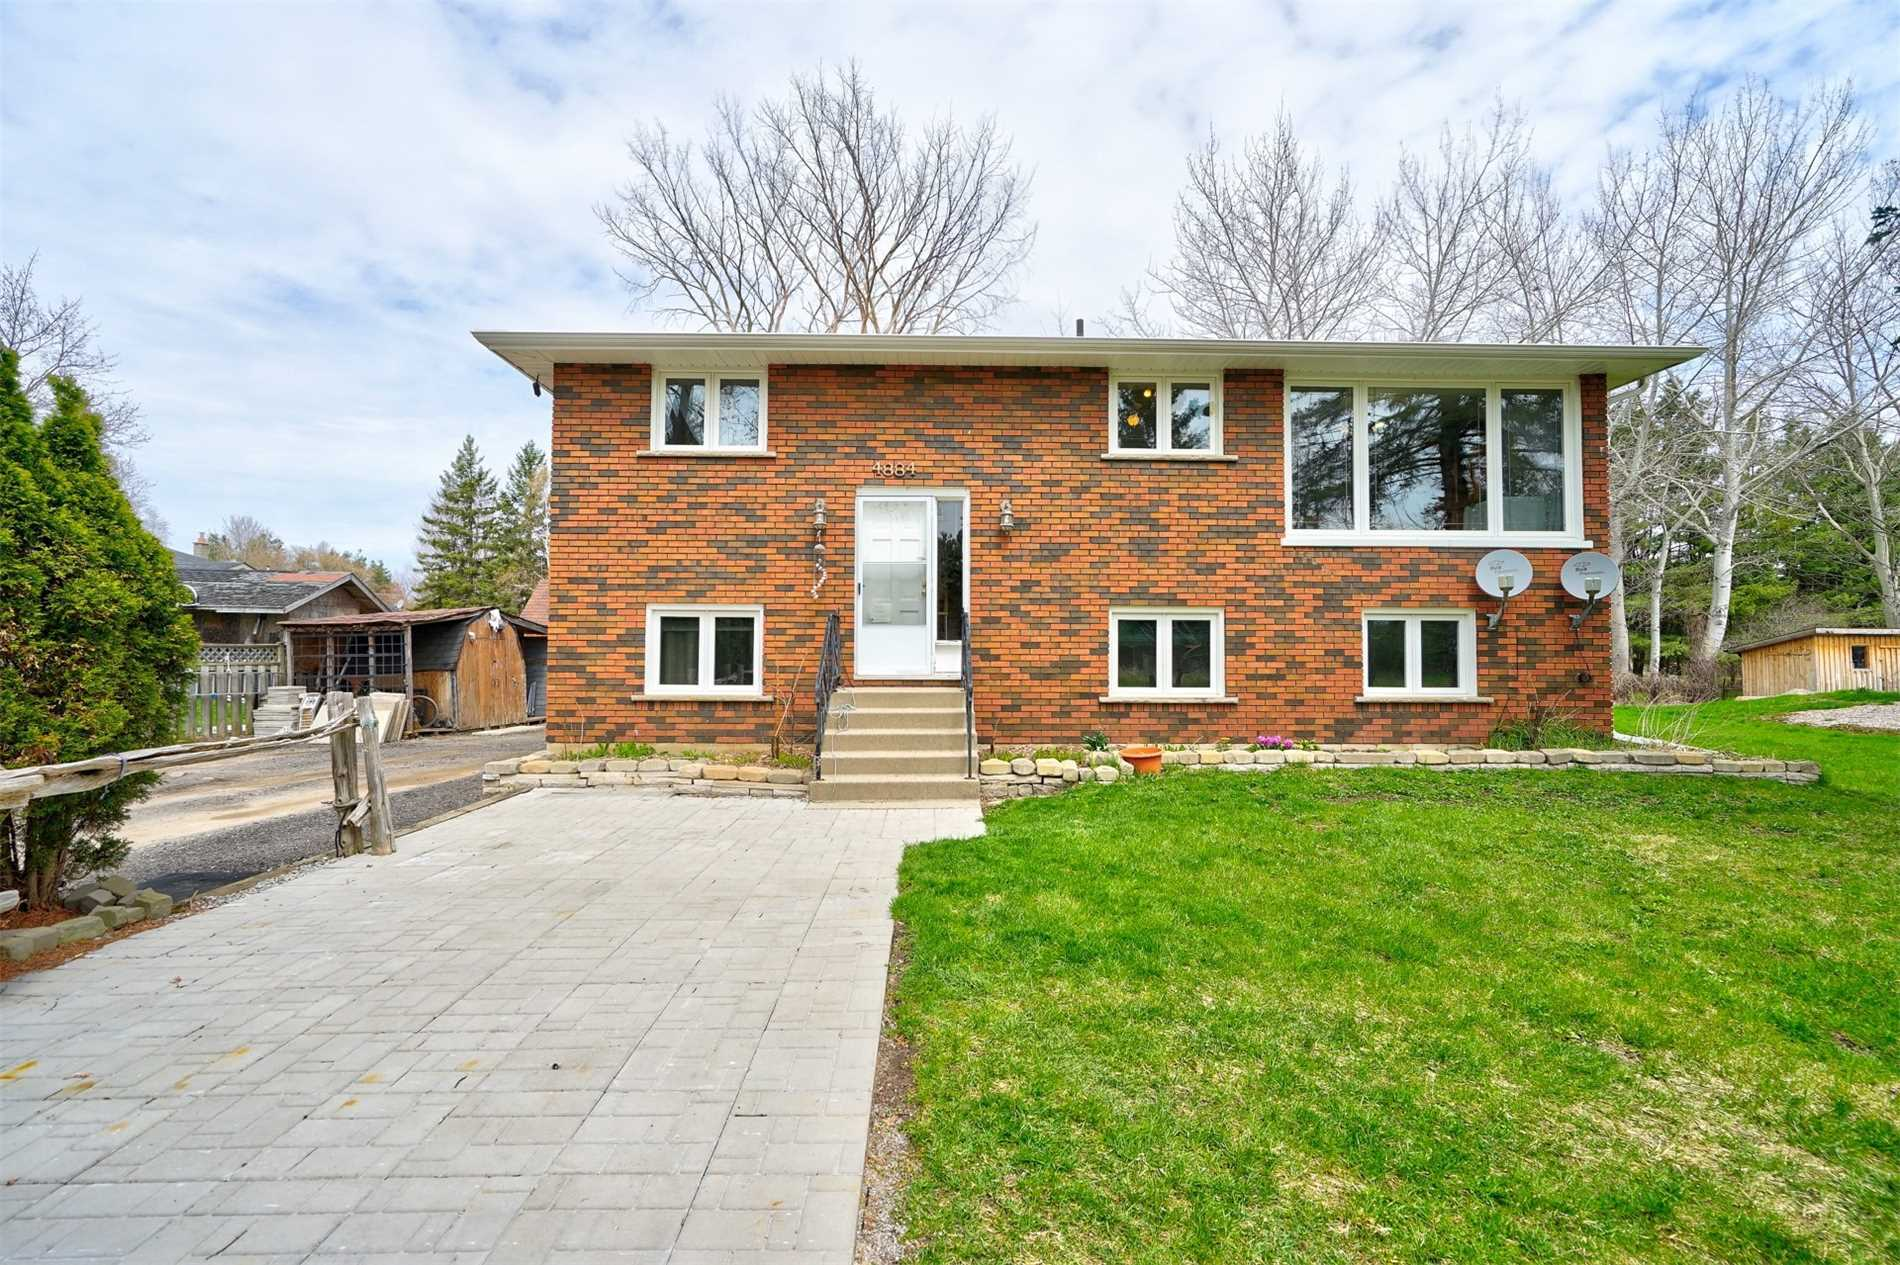 Where Else Could You Find A Fully Finished All Brick Home At This Price? Well Cared For Family Home On Private Street In The Brentwood Community. All Brick, Raised Bungalow W/Just Over 2000 Sqft Of Finished Living Space. Bright E/I Kitchen W/Large Window To Enjoy Views Of Spacious Yard. 3 Good Sized Bdrms Upstairs & Full Bath. Fully Finished Bsmt Features 4th Bdrm, 3Pc Bath W/Laundry, Incredible Rec Rm Wcozy Wood Fireplace & Bar Area, Perfect For Entertaining